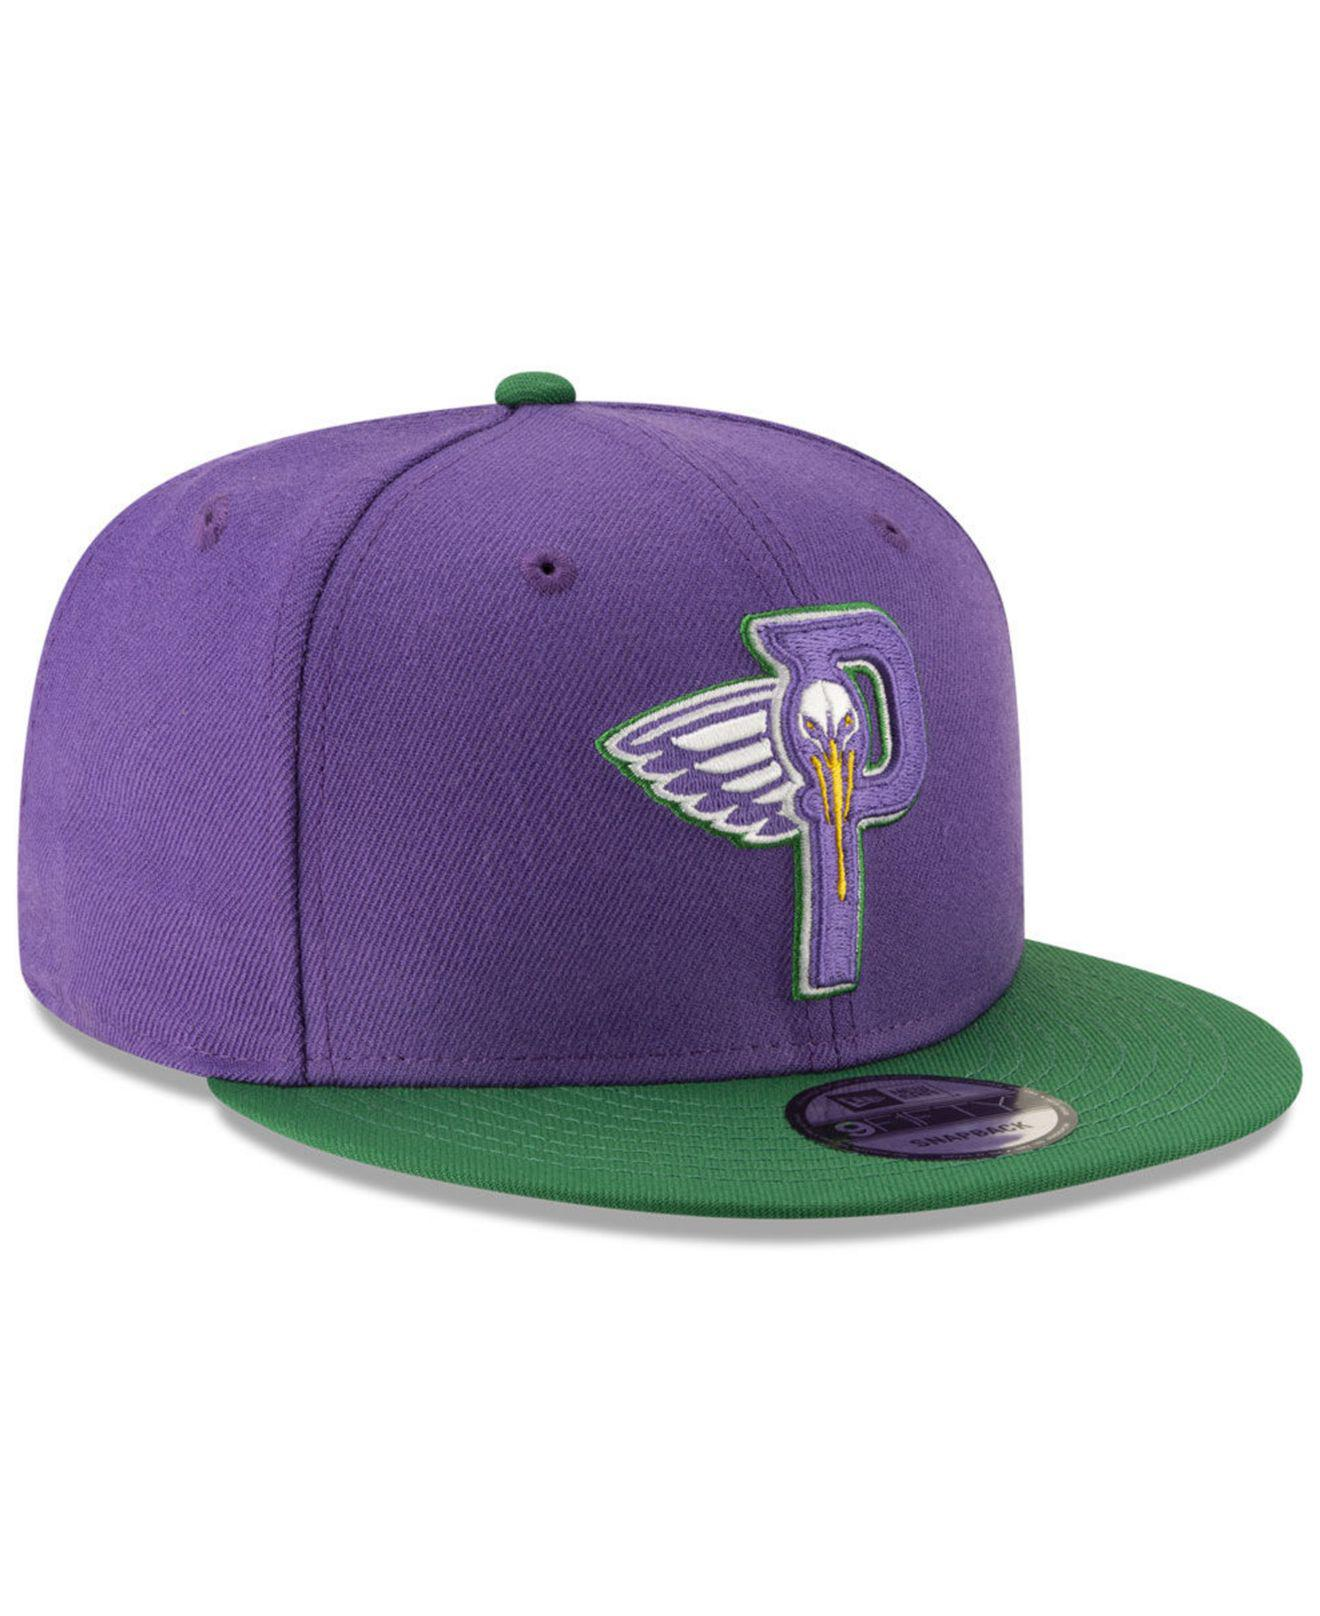 reputable site ce860 e4b08 ... night sky 9fifty snapback cap 9ff39 9c6ed  australia new orleans  pelicans light city combo 9fifty snapback cap for men lyst. view fullscreen